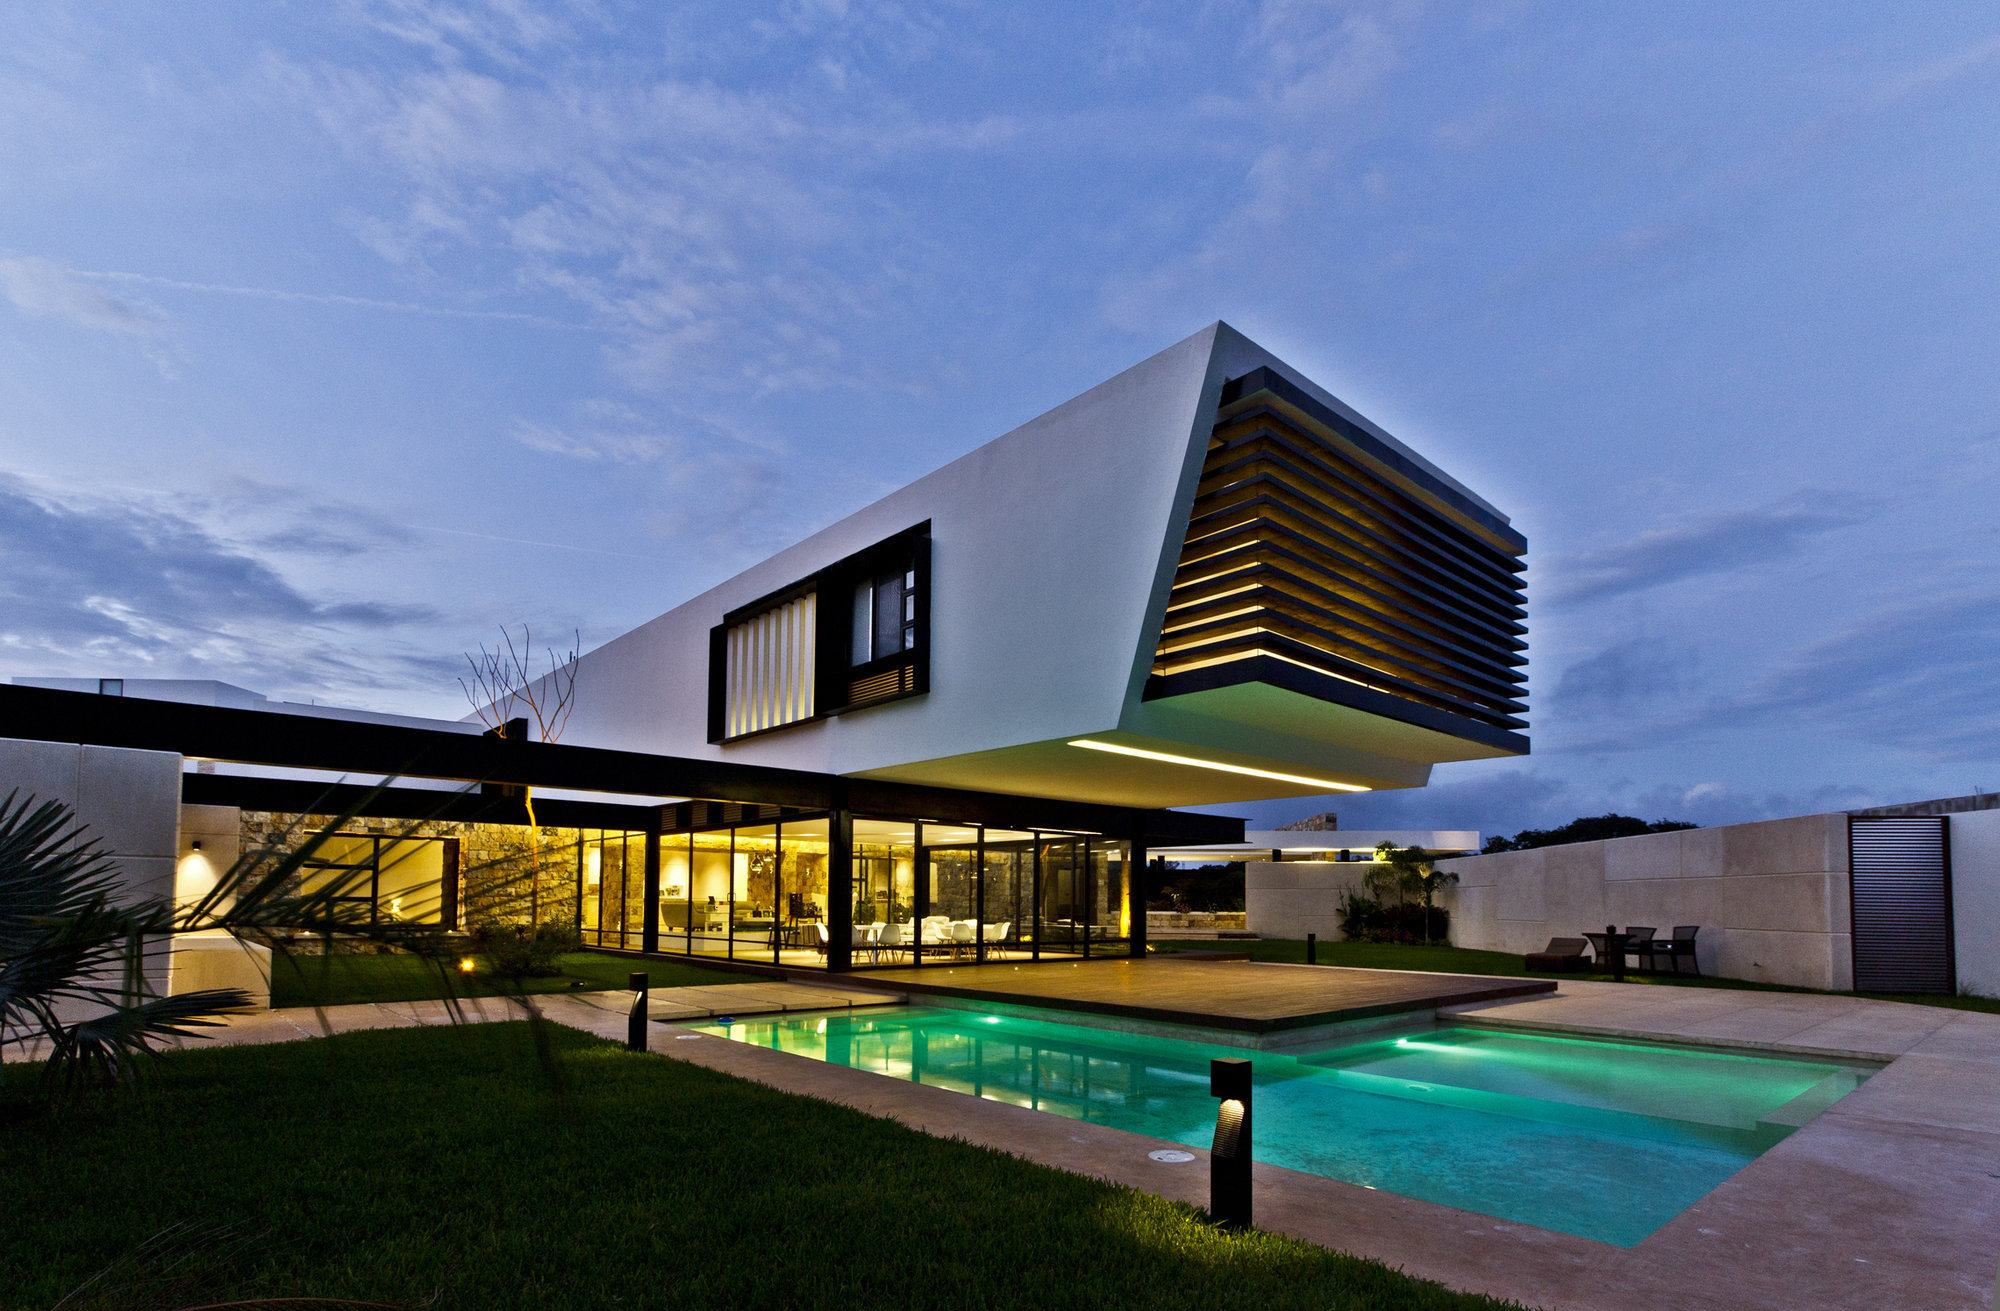 Contemporary-Comfort-At-The-Temozón-House-in-Yucatan-Mexico-4